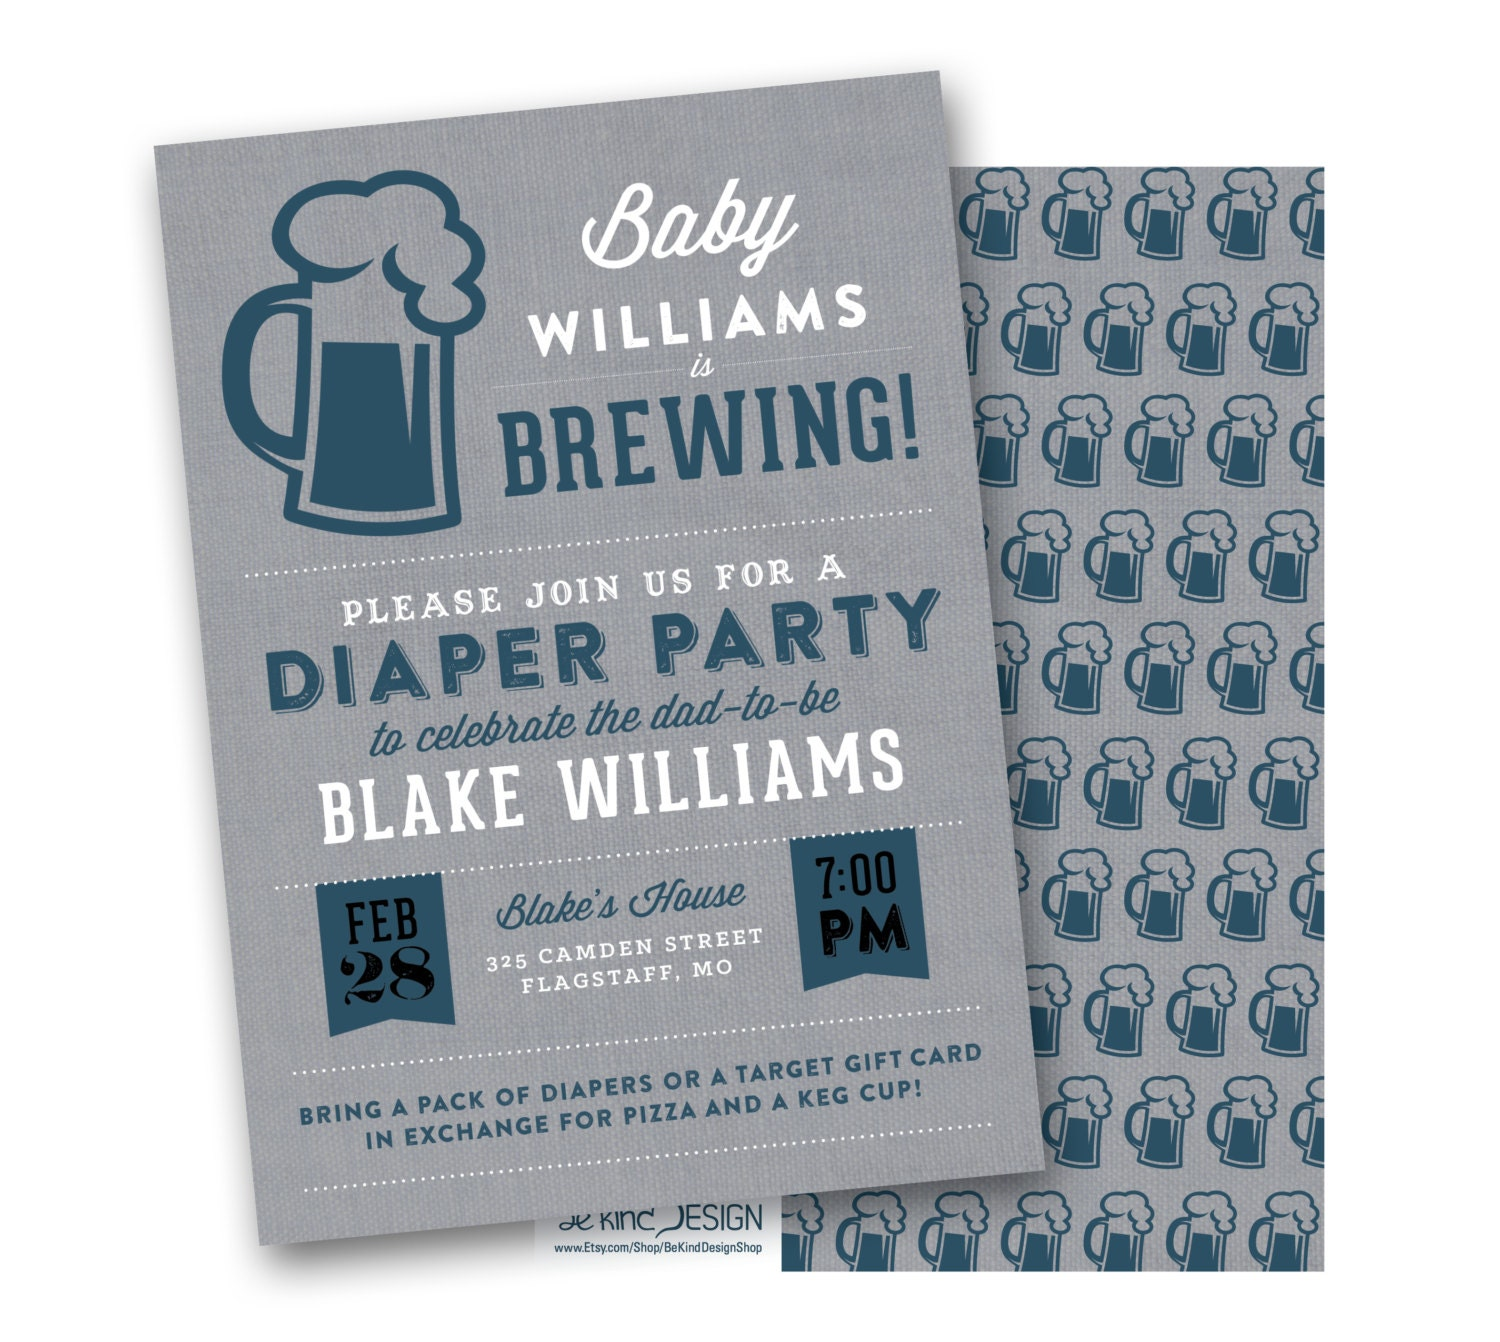 Diaper Party Invitation Baby Is Brewing. Law School Graduation Gift. Aerospace Engineering Graduate School. Graduation Party Favors Diy. We Re Hiring Sign. Daily Appointment Schedule Template. Holiday Party Template Free. Thanksgiving Flyer Template. Free Project Manager Resume Templates